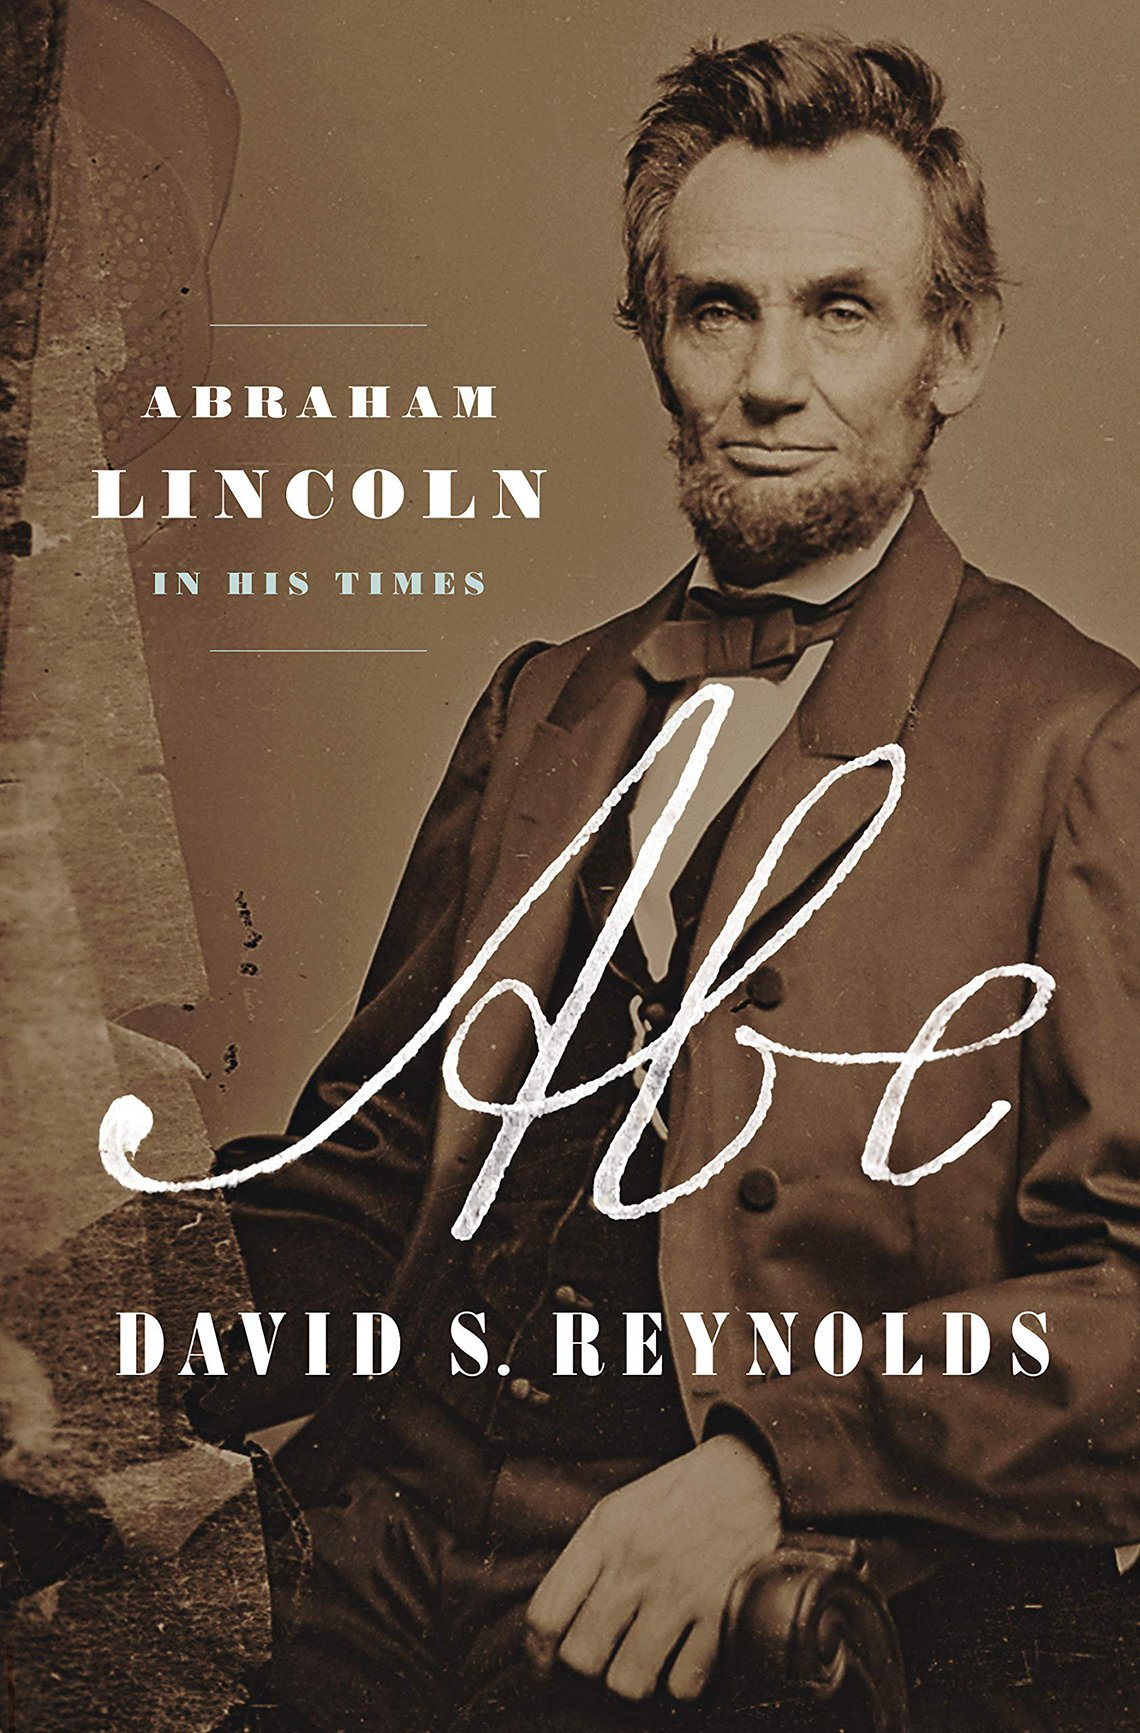 abe abraham lincoln in his times book by david s reynolds